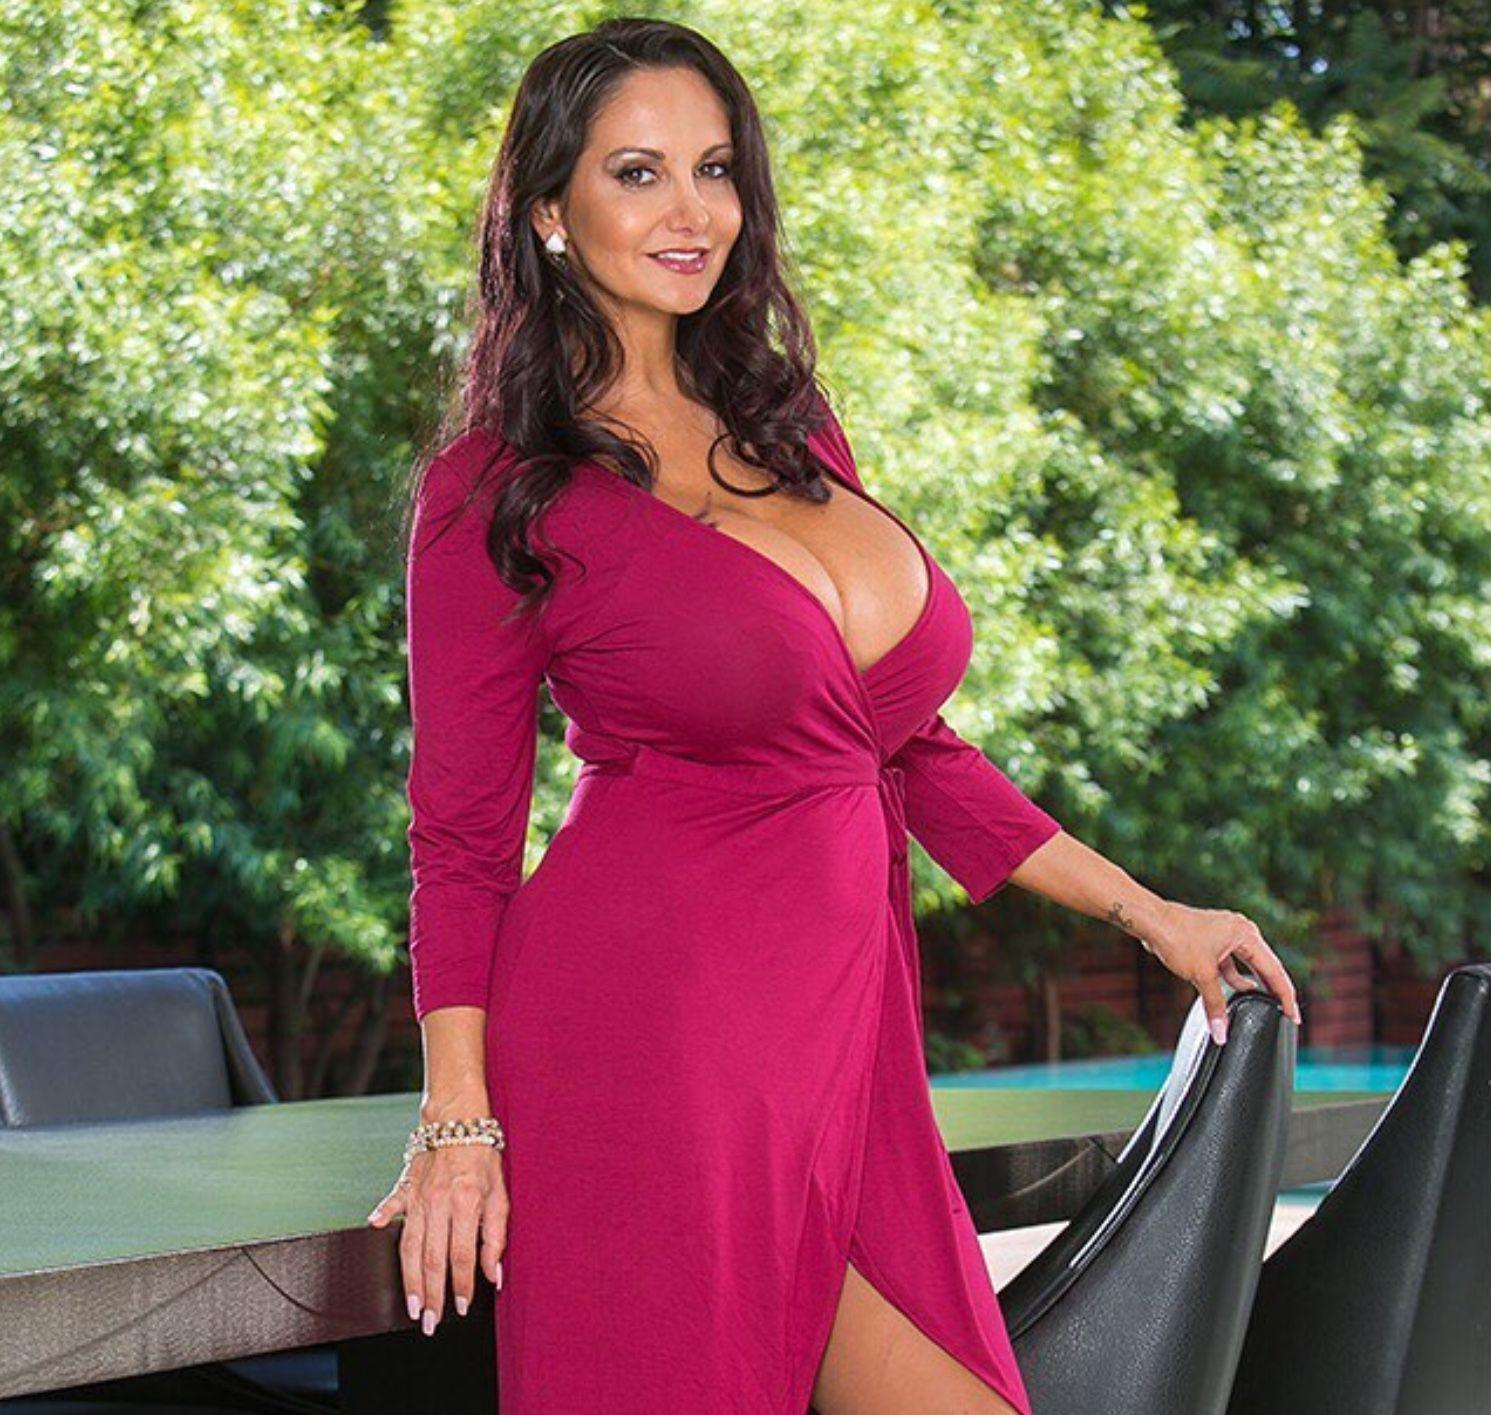 Ava Addams Wallpapers High Quality | Download Free